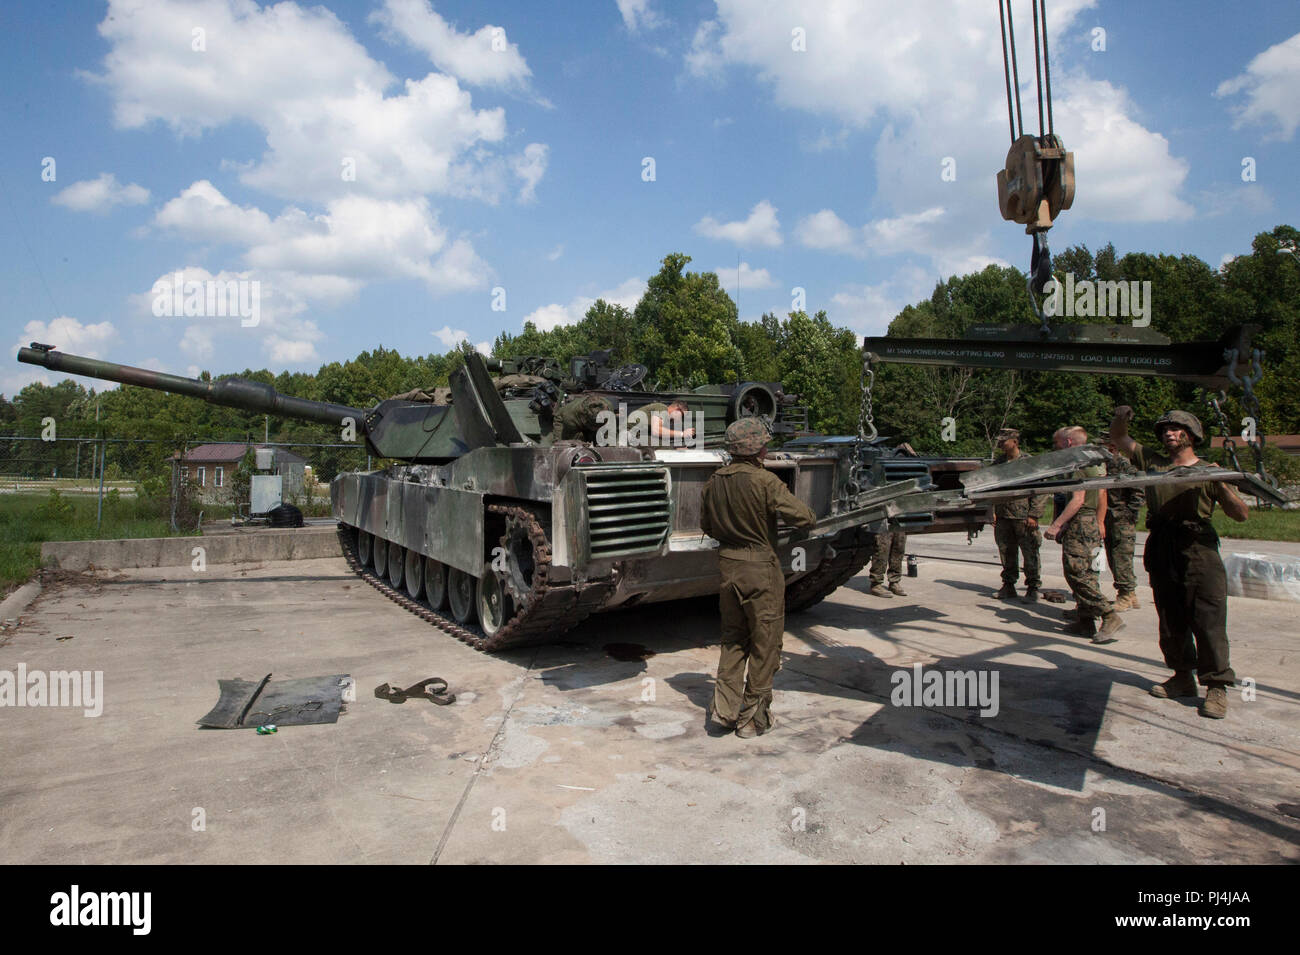 Marines with 1st Tank Battalion, 2nd Tank Bn., and 4th Tank Bn. provide maintenance to an M1A1 Abrams tank in preparation for the 15th annual Tiger Competition, Aug. 27, 2018 in Fort Knox, Kentucky. The competition highlights the critical and quick-reacting combat skills of the participating battalions. (U.S. Marine Corps photo by Lance Cpl. Tessa D. Watts) Stock Photo